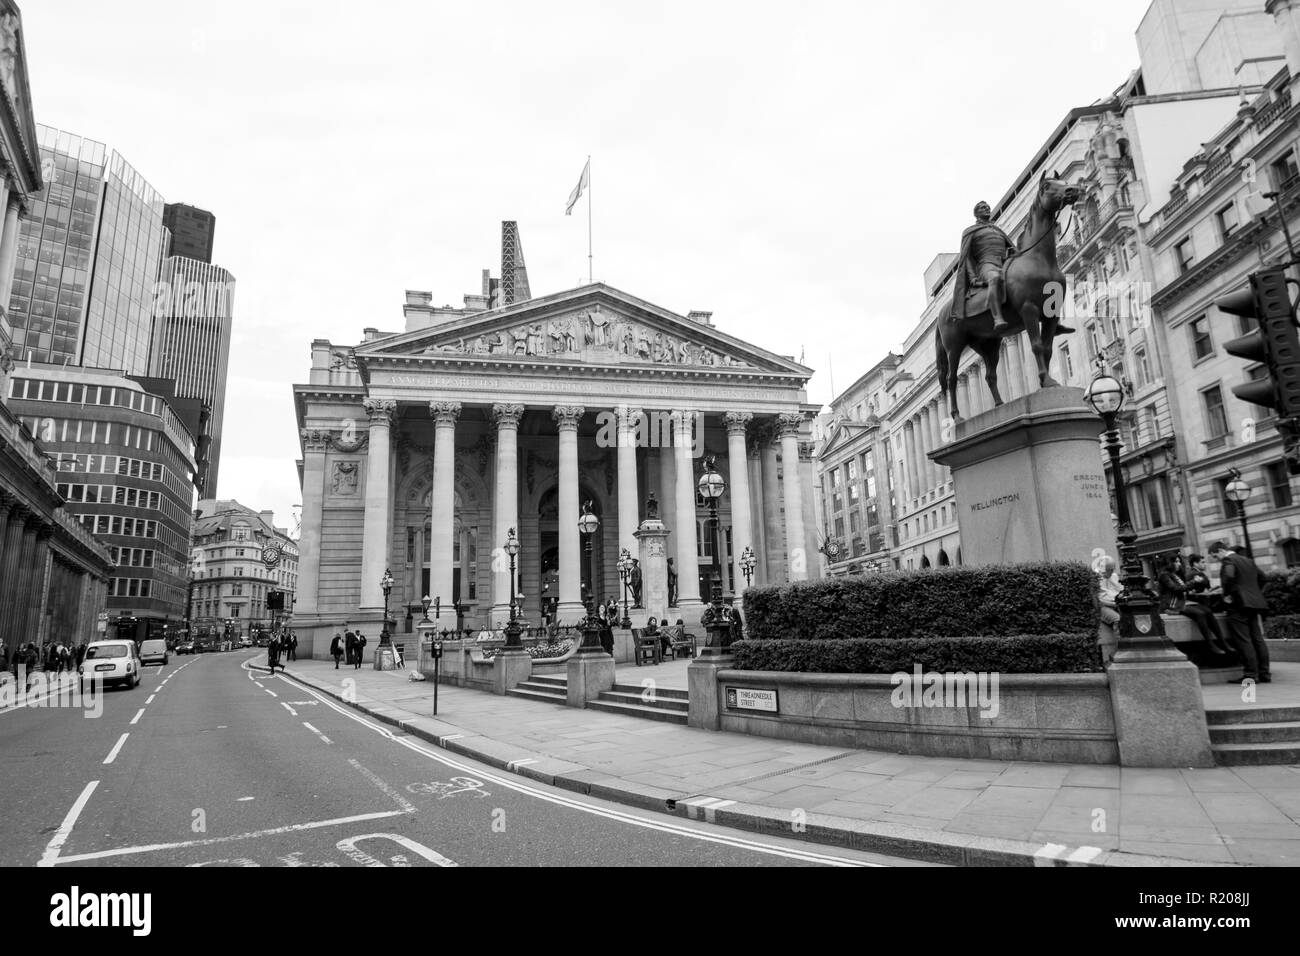 London/England - 06.03.2014: London Equestrian statue of the Duke of Wellington, City of London at Bank Junction - Stock Image